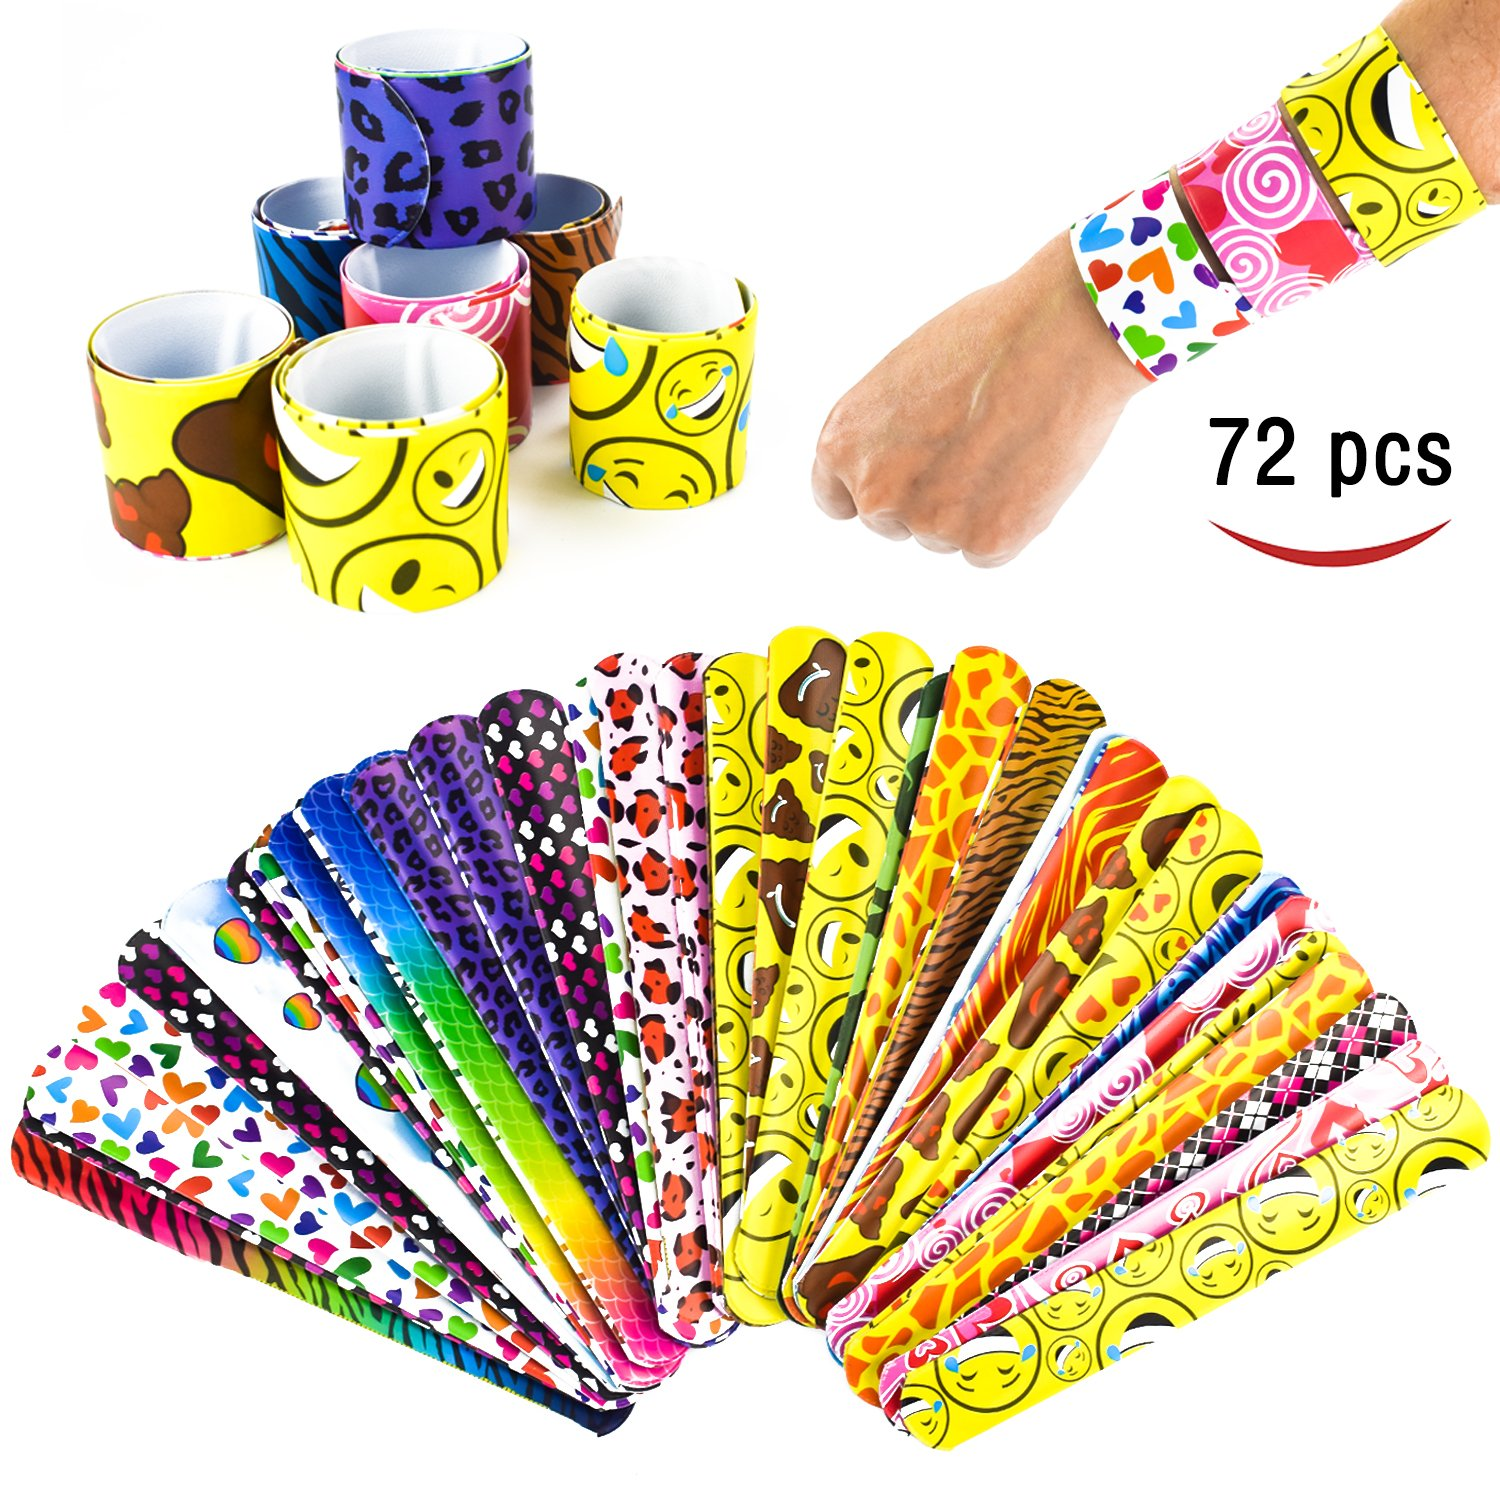 IAMGlobal 72 Pcs Slap Bracelets, Slap Bands, Party Favors Pack with Colorful Hearts, Emoji, Animal Prints For Birthday Party, School Classroom Rewards, For Boys and Girls (24 Designs)